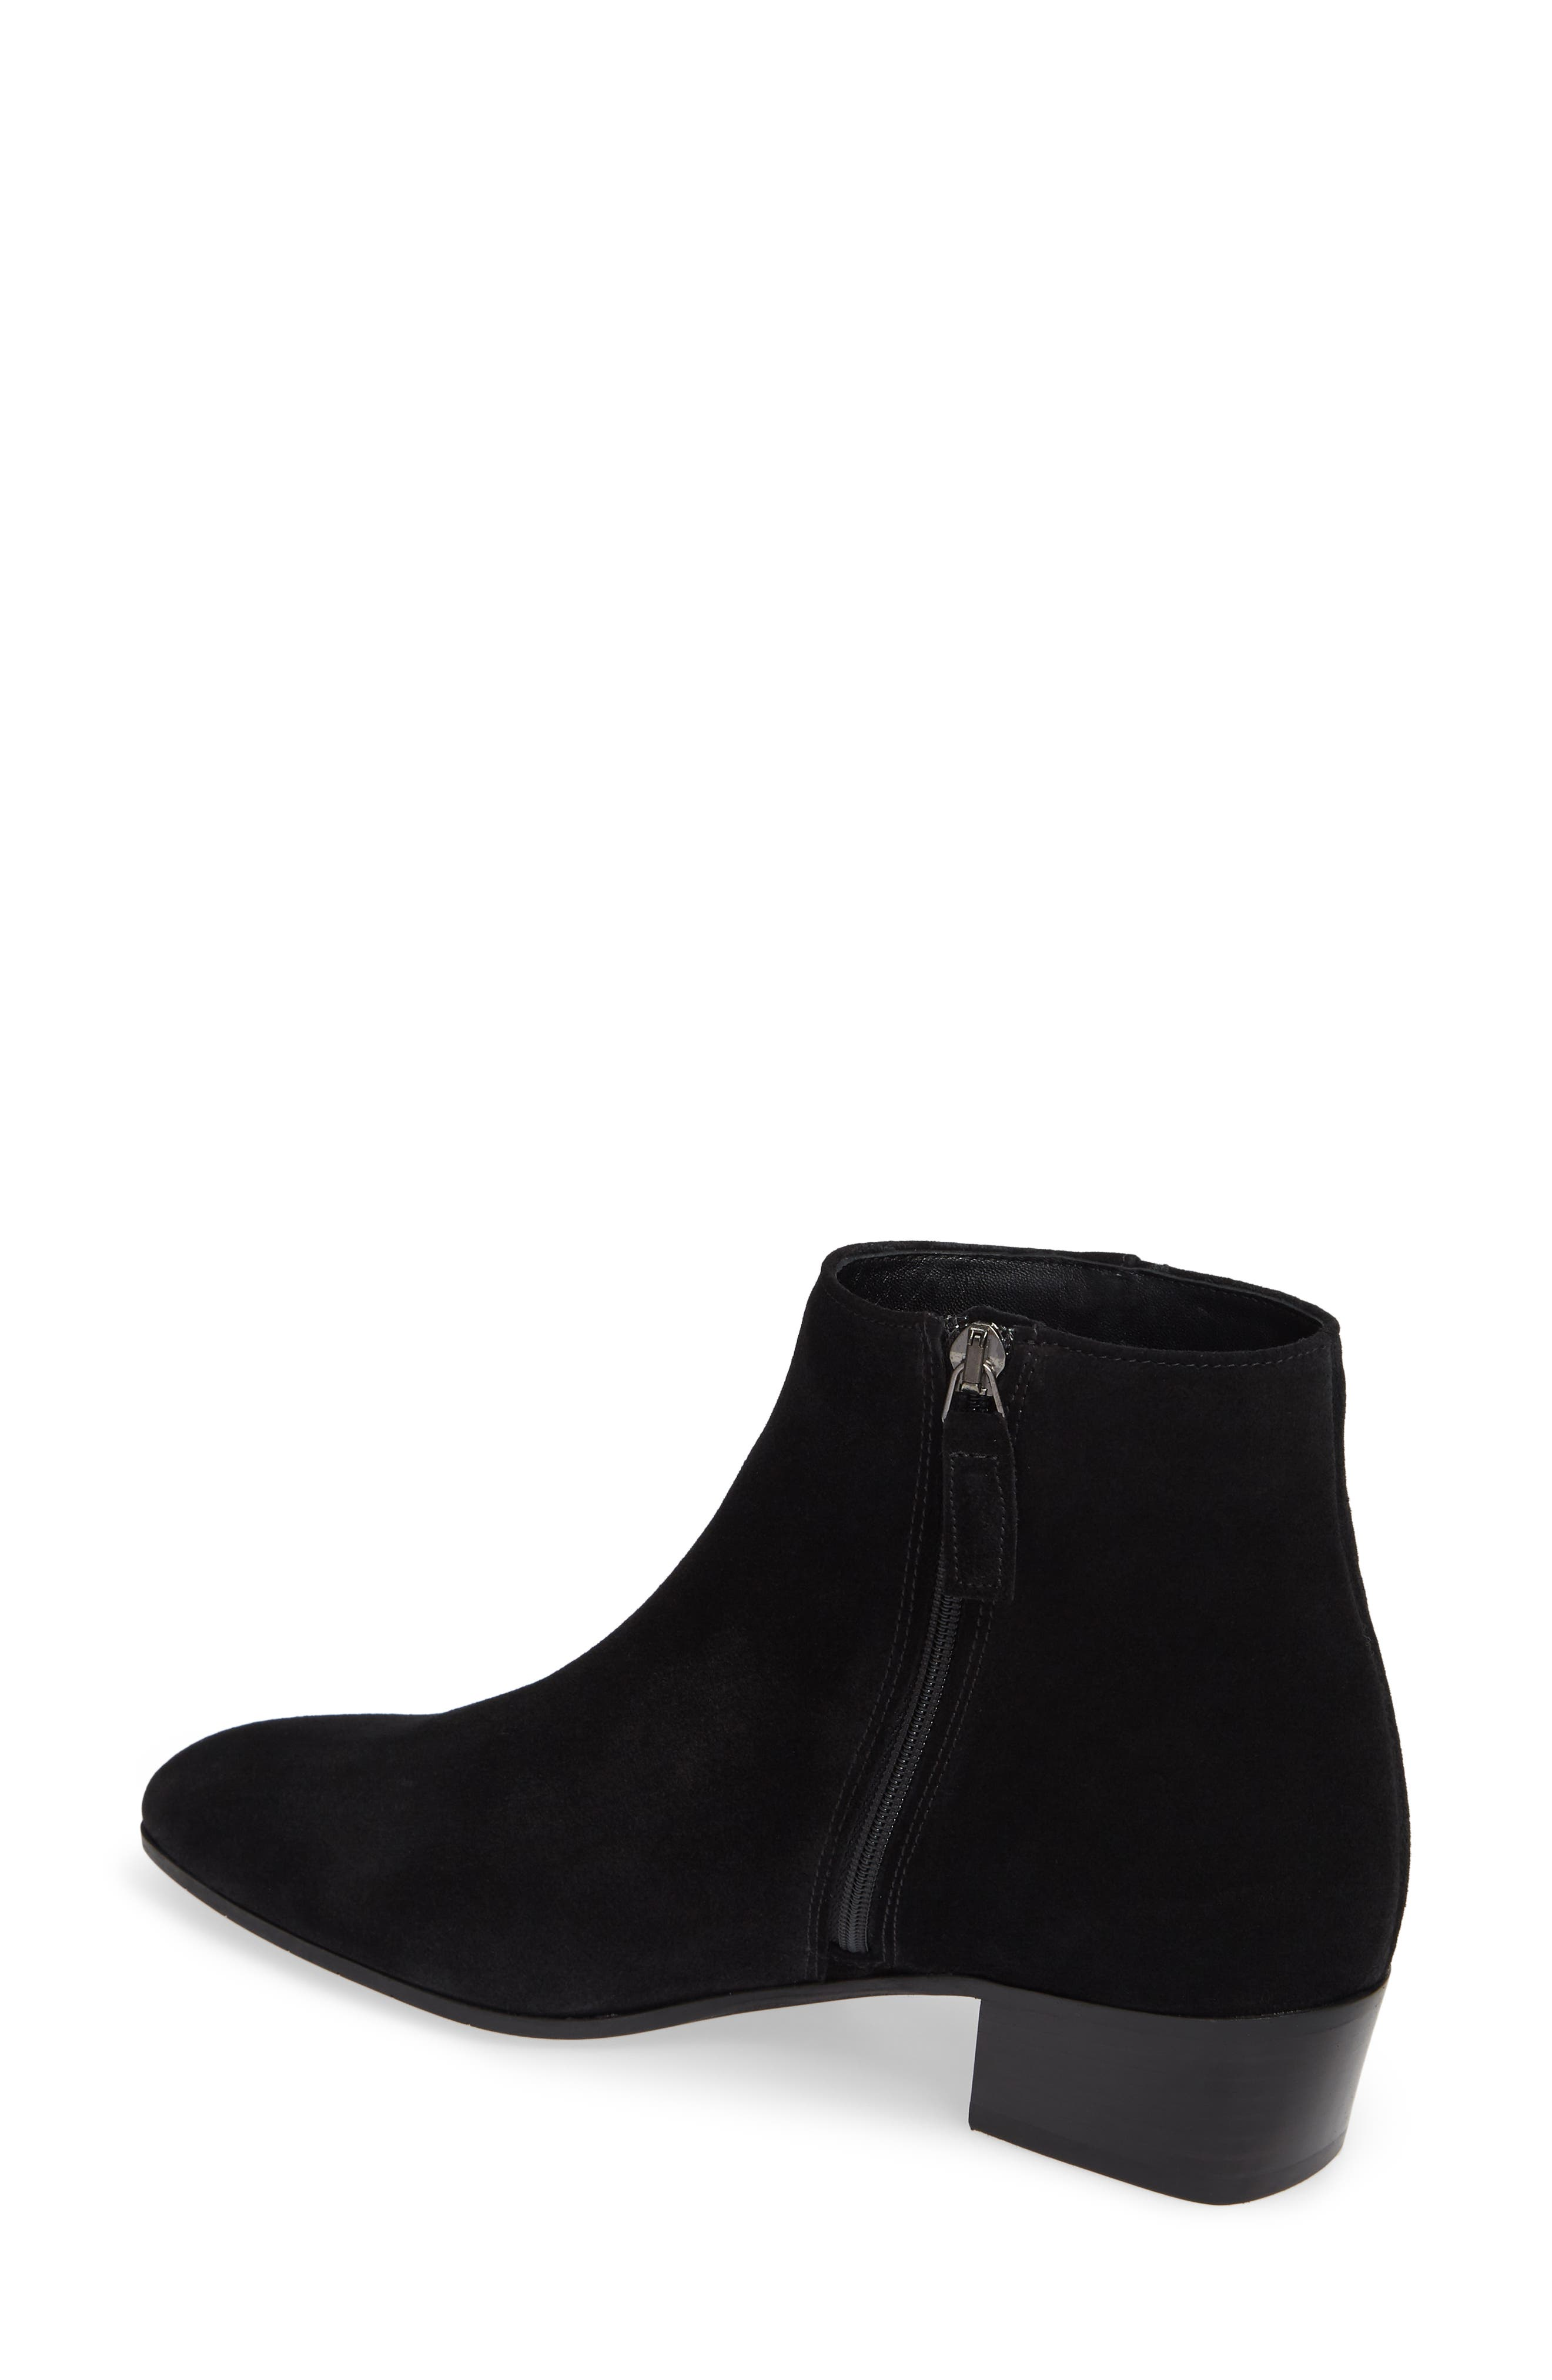 03f0ff8a6e49 Women's Aquatalia Booties & Ankle Boots | Nordstrom